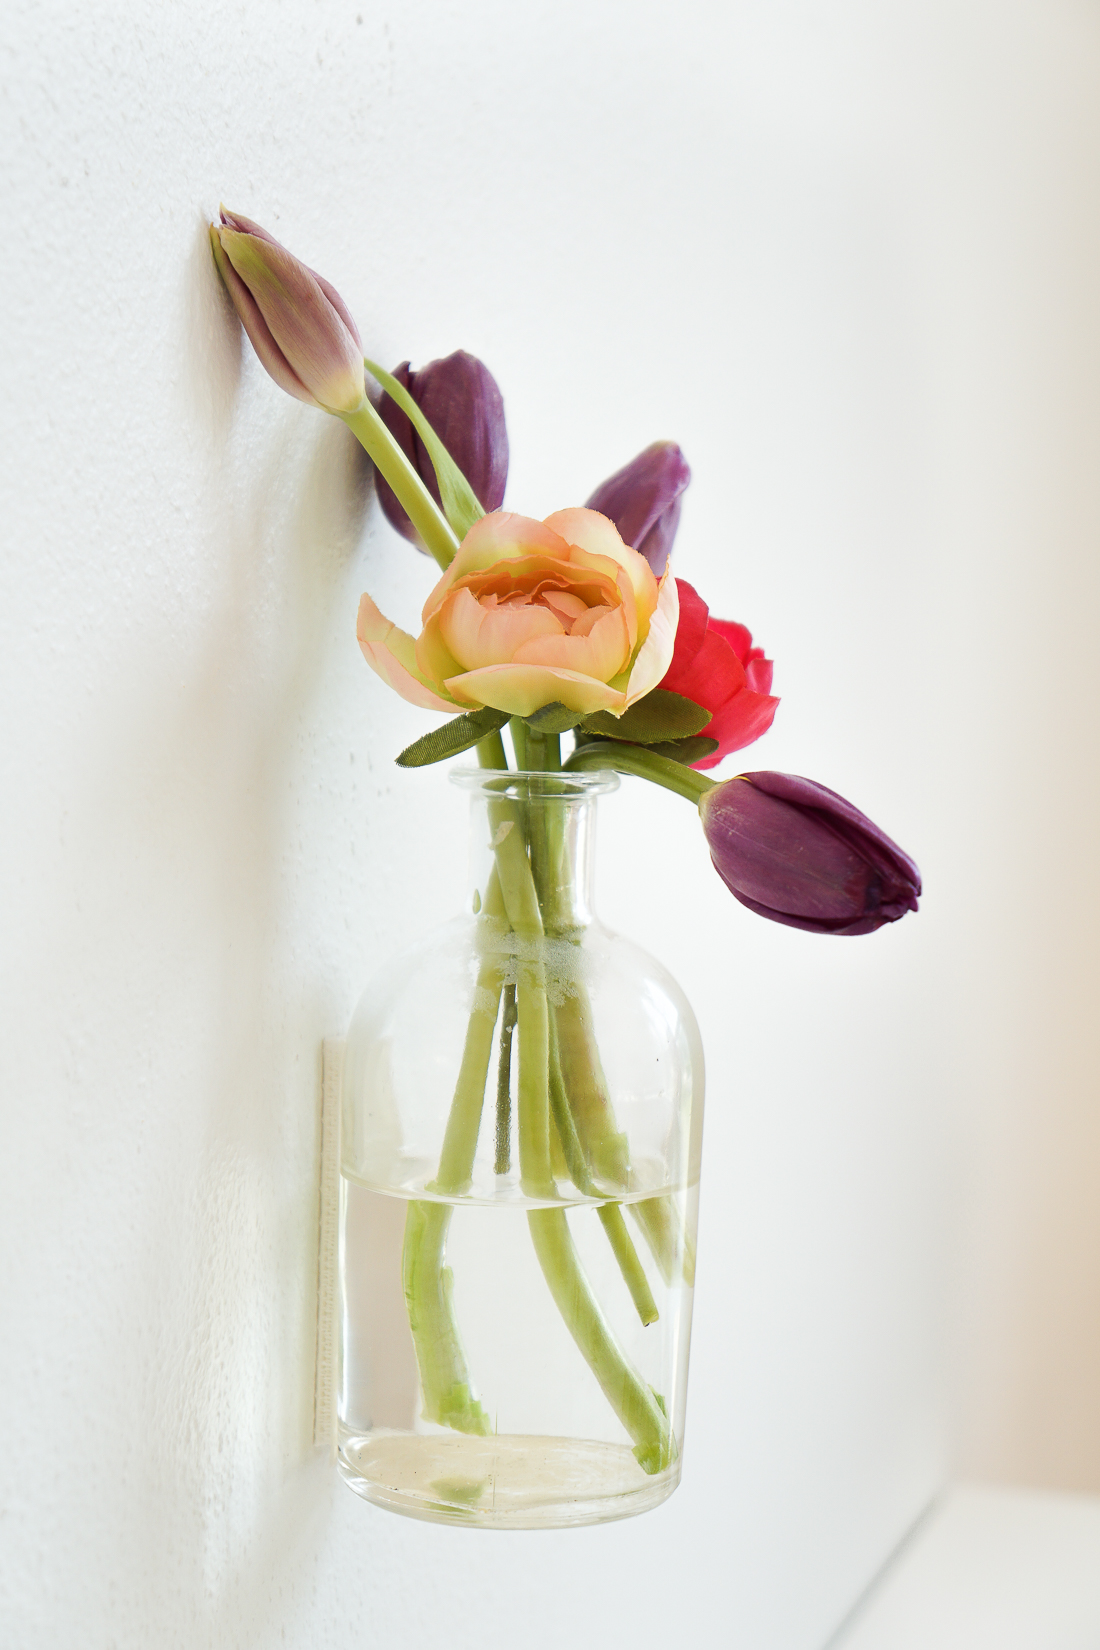 Wall vases for flowers - Hang Flowers On Vertical Spaces Fast Easily And Non Permanently With This 5